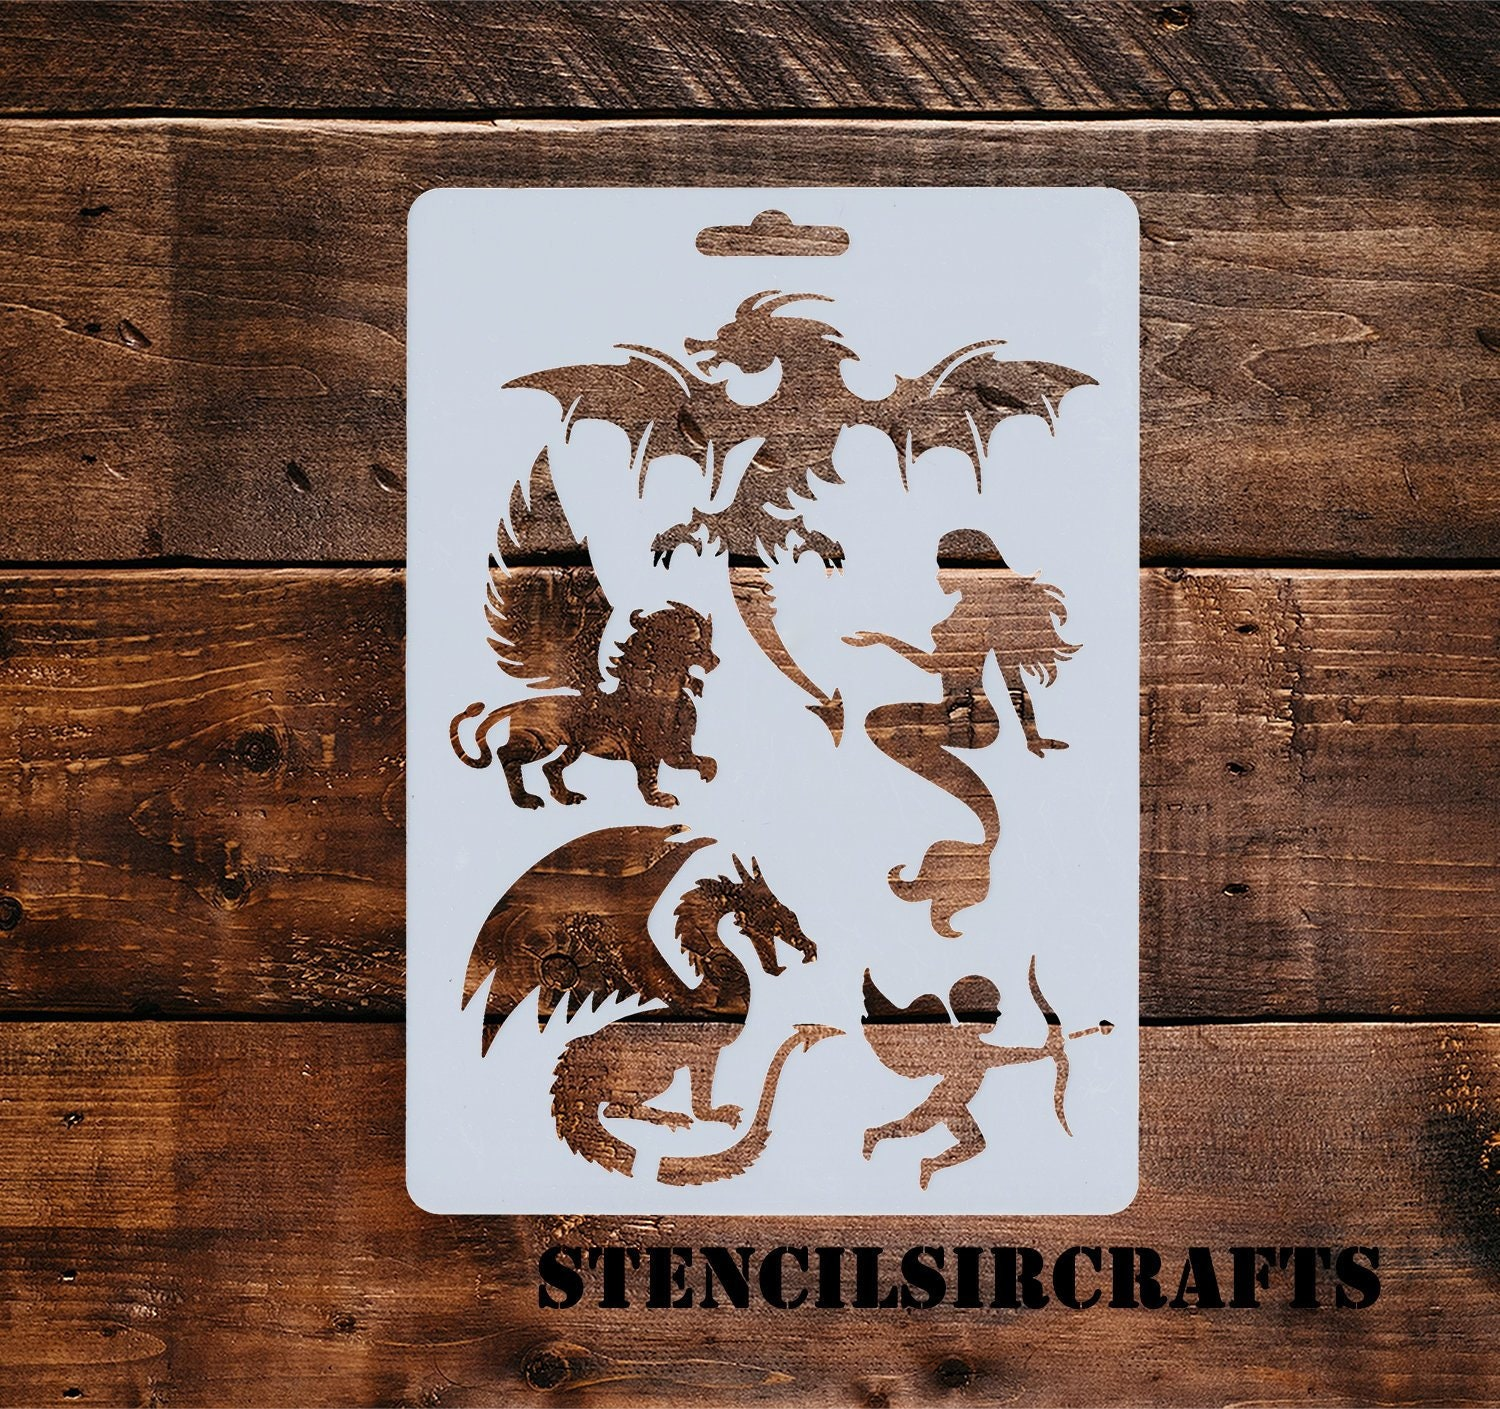 Mythical Creatures Stencil, Planner Stencil, Planner Accessory, Notebook  Stencil, Soft Plastic Sheet, 17 7 x 12 7 cm, 7